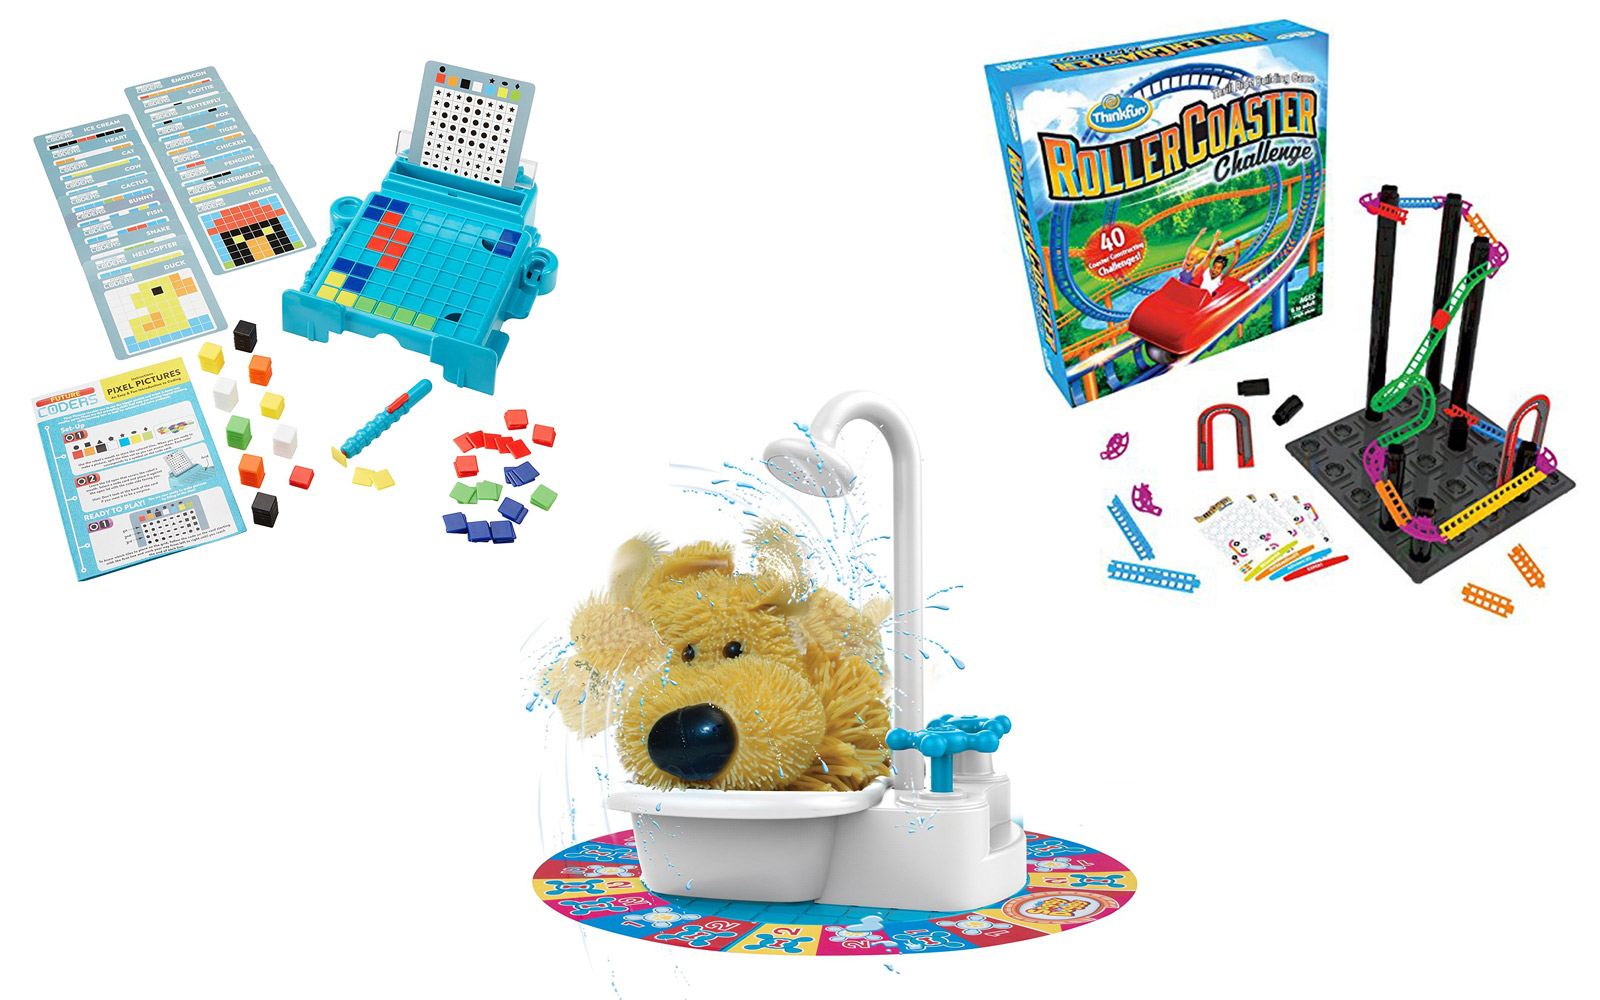 Coding game, roller coaster challenge, soggy doggy